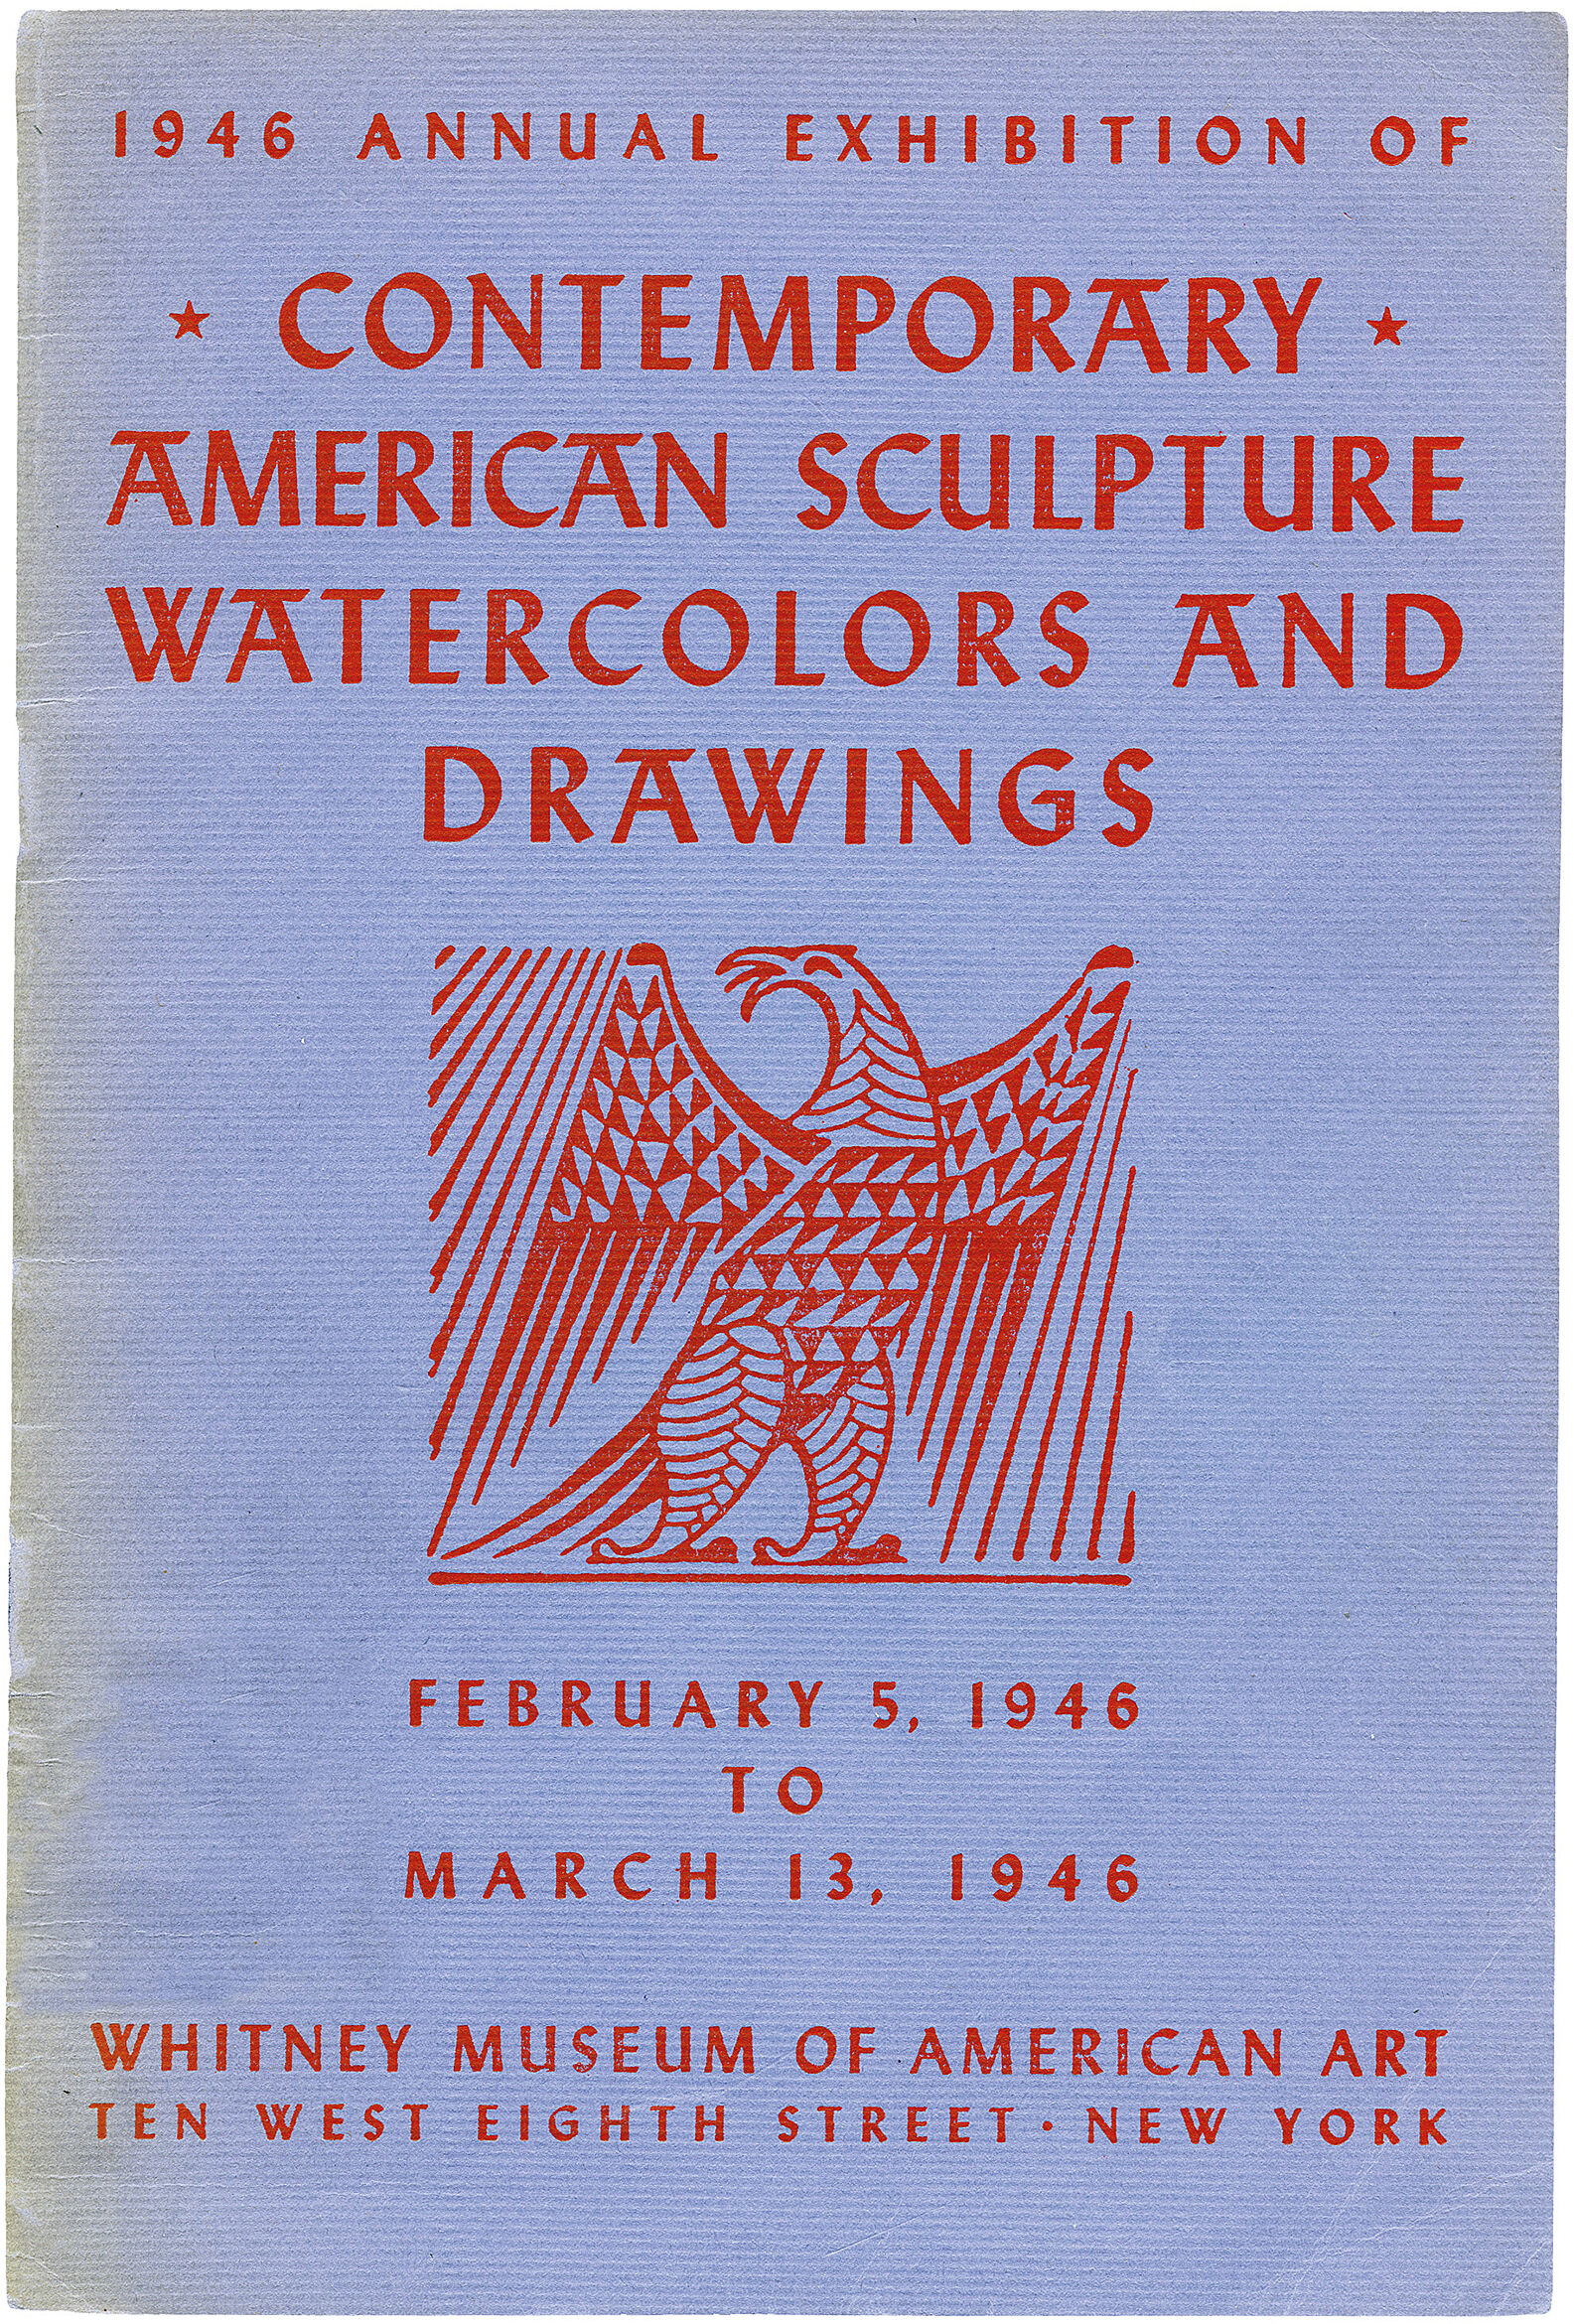 Cover for 1946 Annual Exhibition of Contemporary American Sculpture, Watercolors and Drawings catalogue